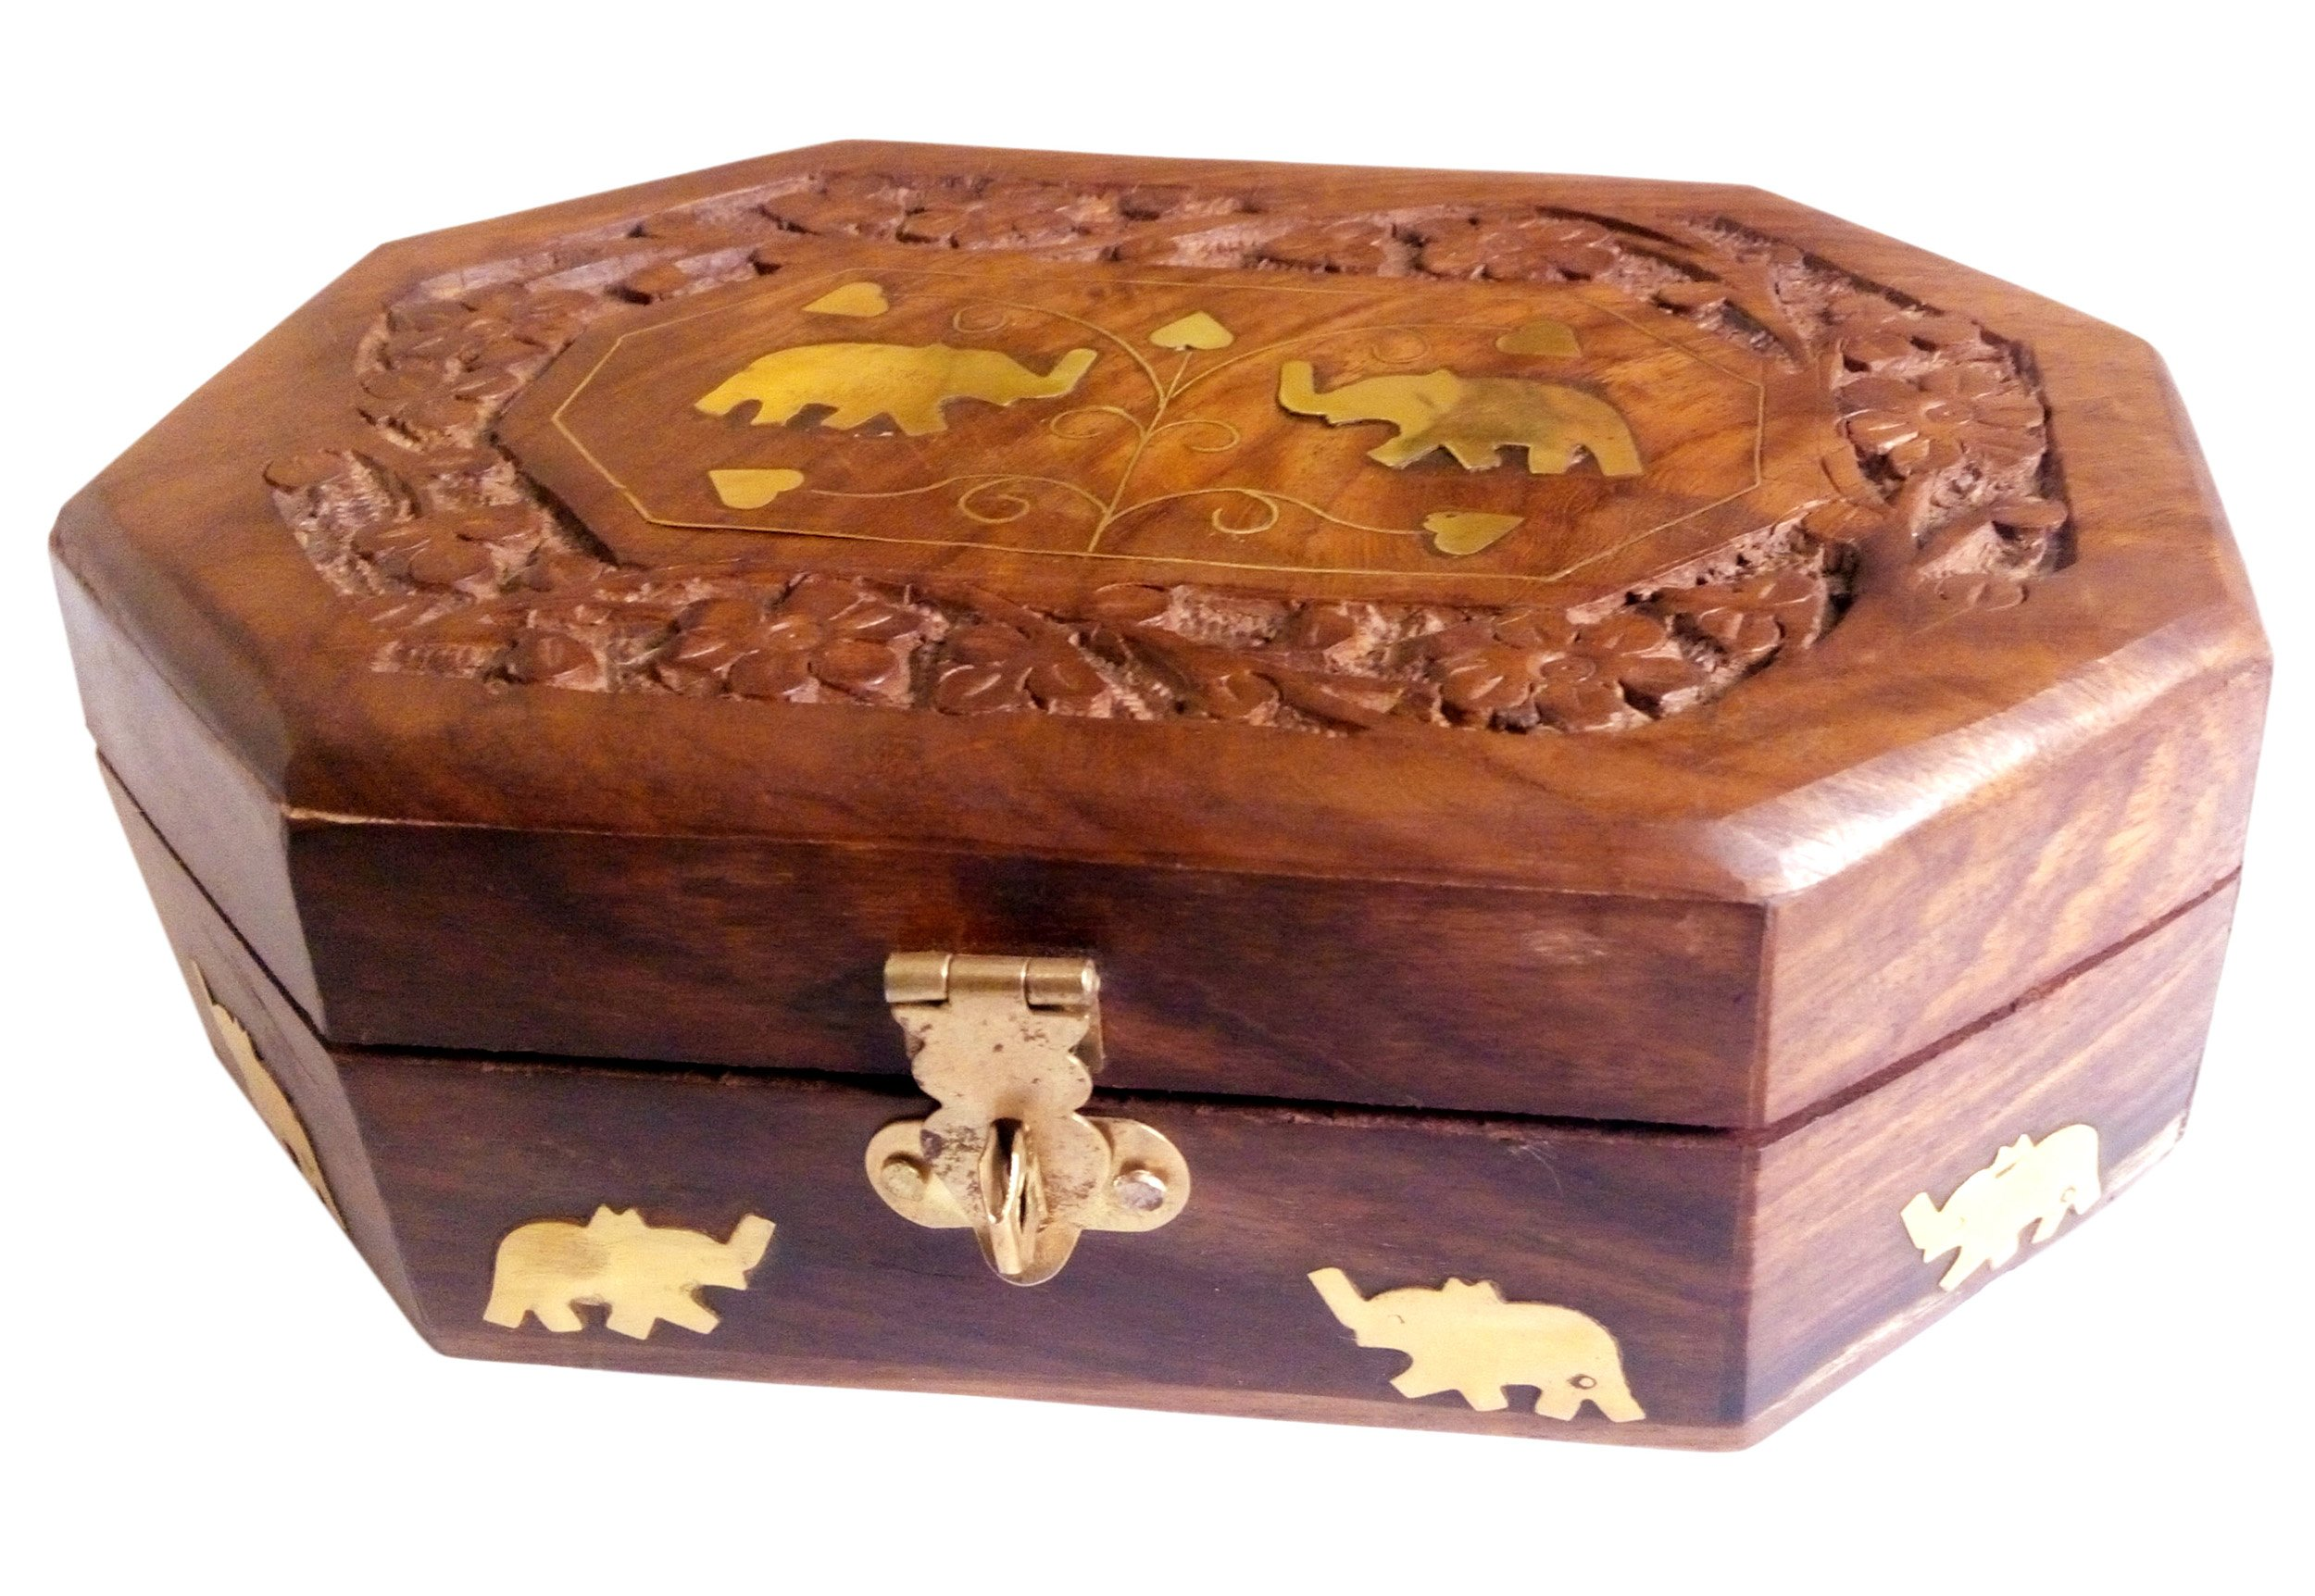 Details about  /Wooden Jewellery Box Octagonal Handcrafted Elephant Brass Inlay /& Wood Carvings